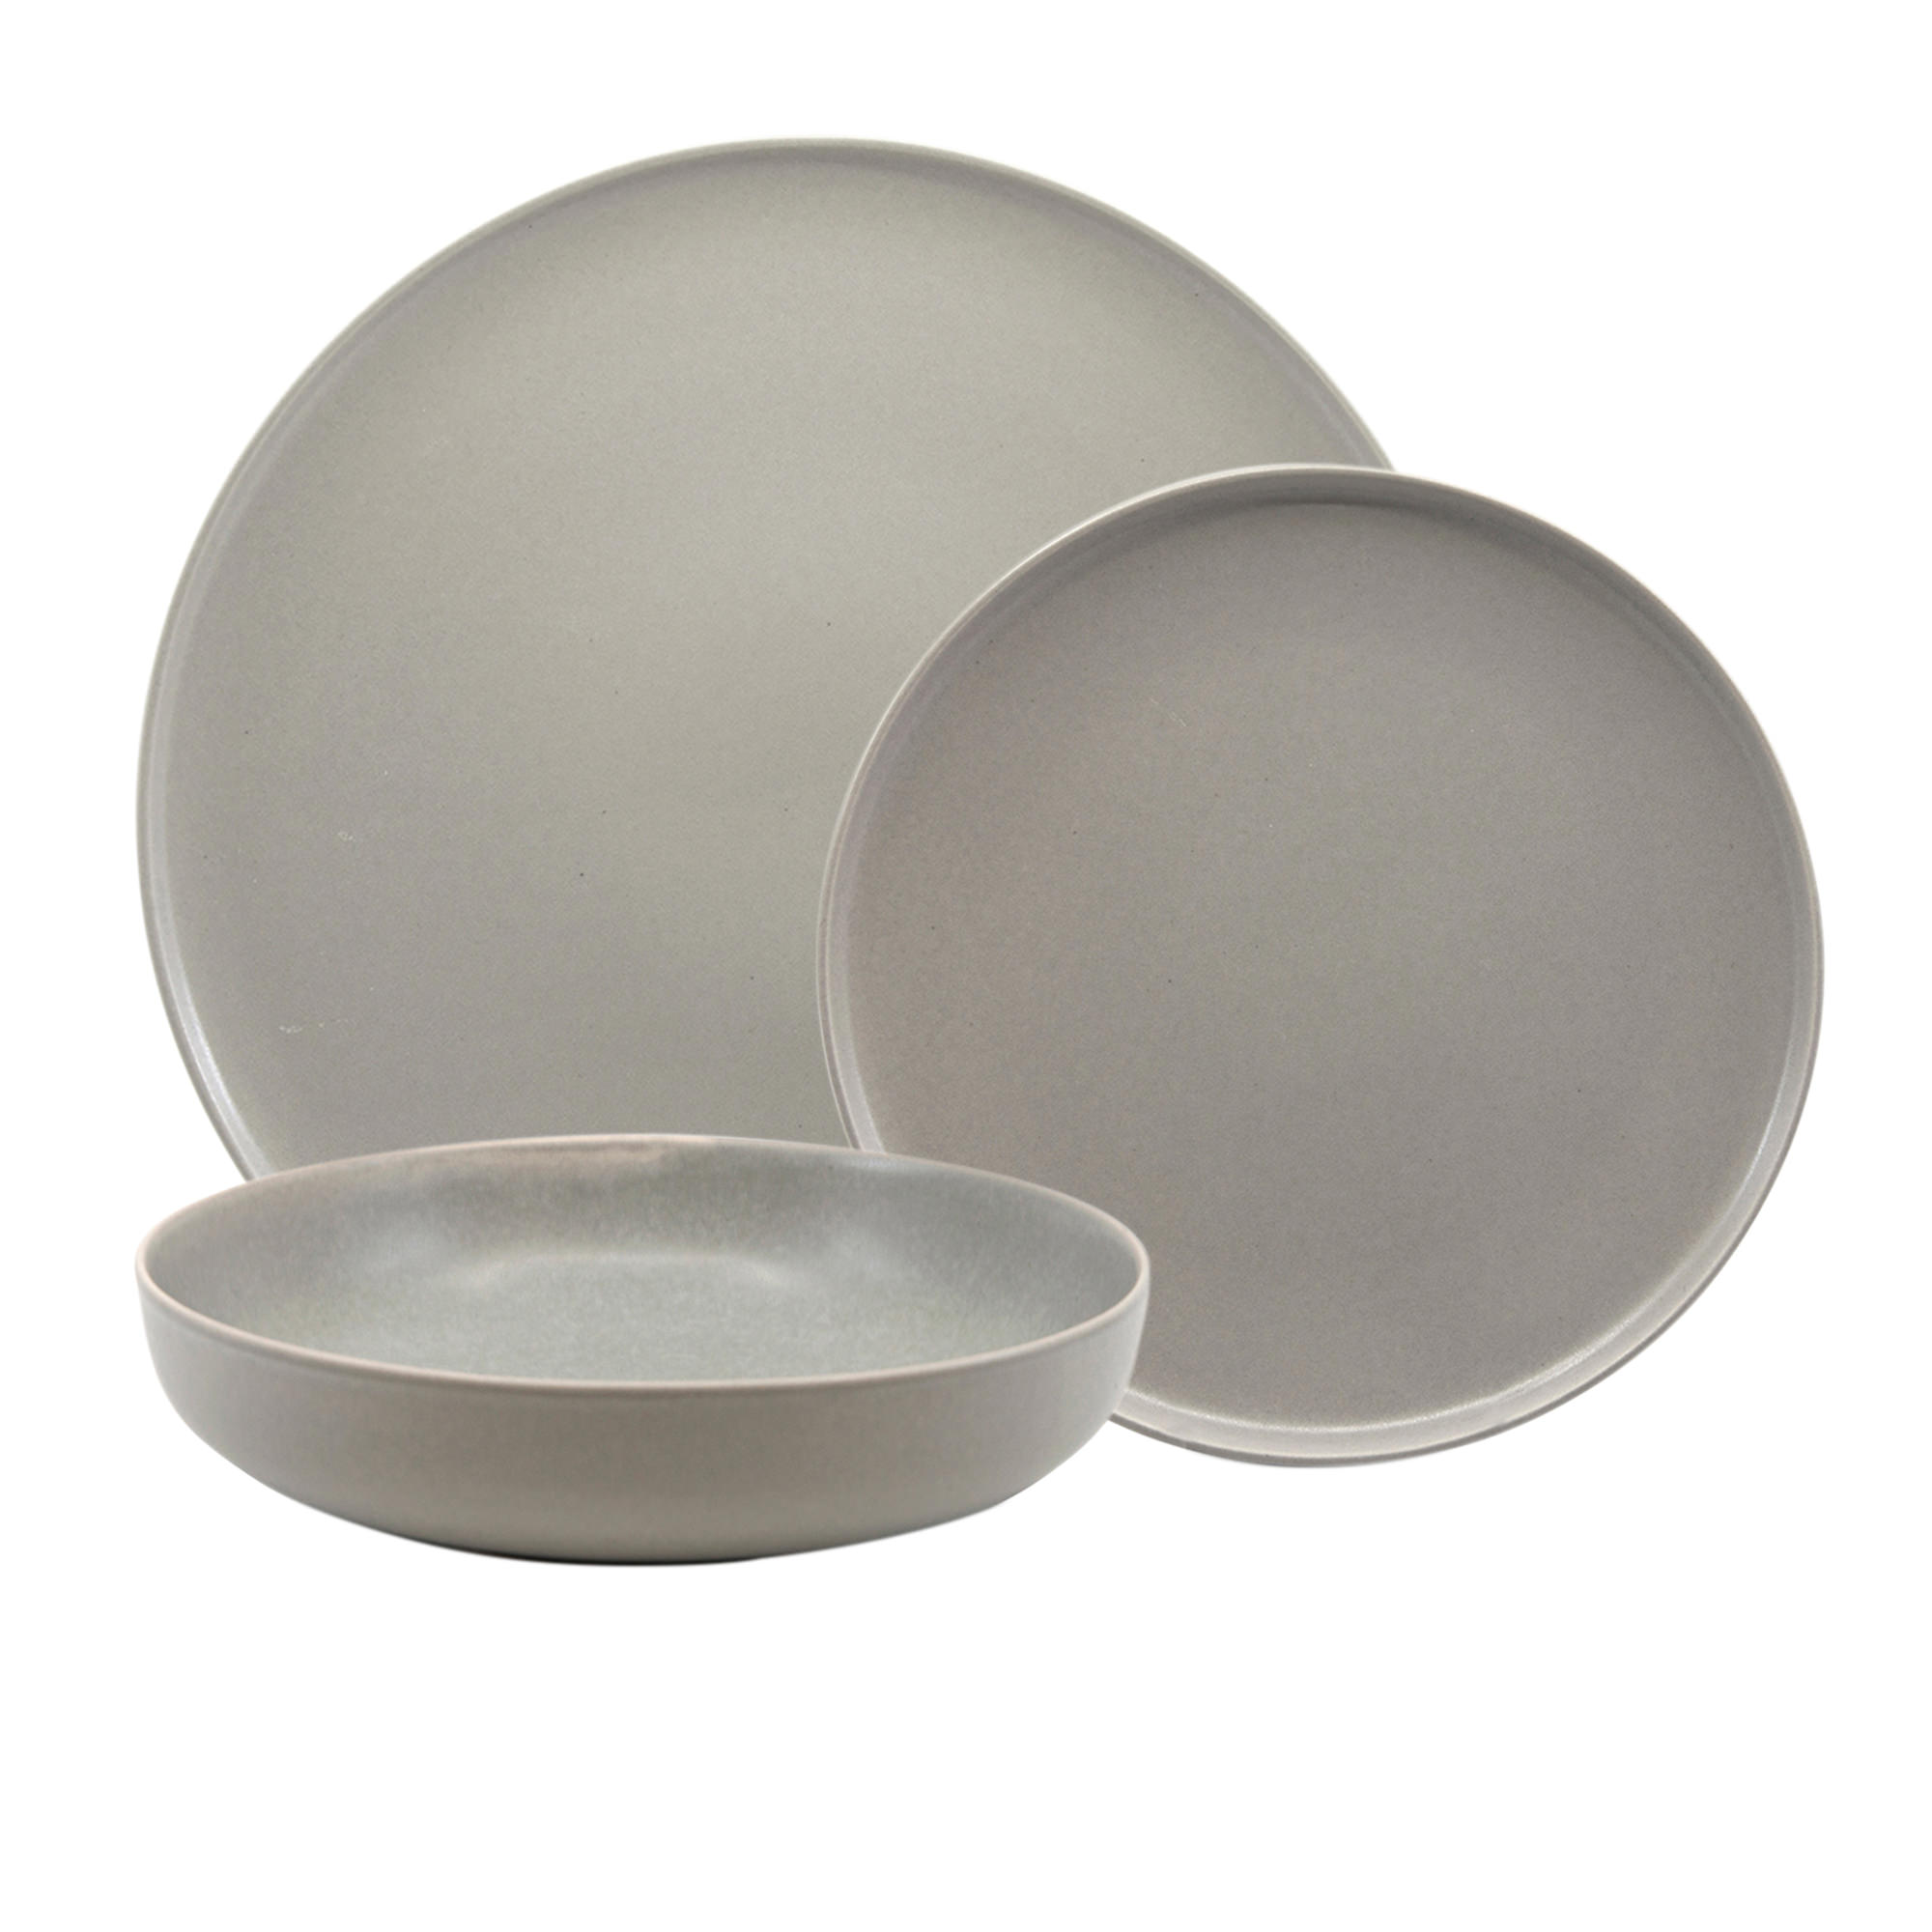 Salt & Pepper Hue 12pc Dinner Set Grey